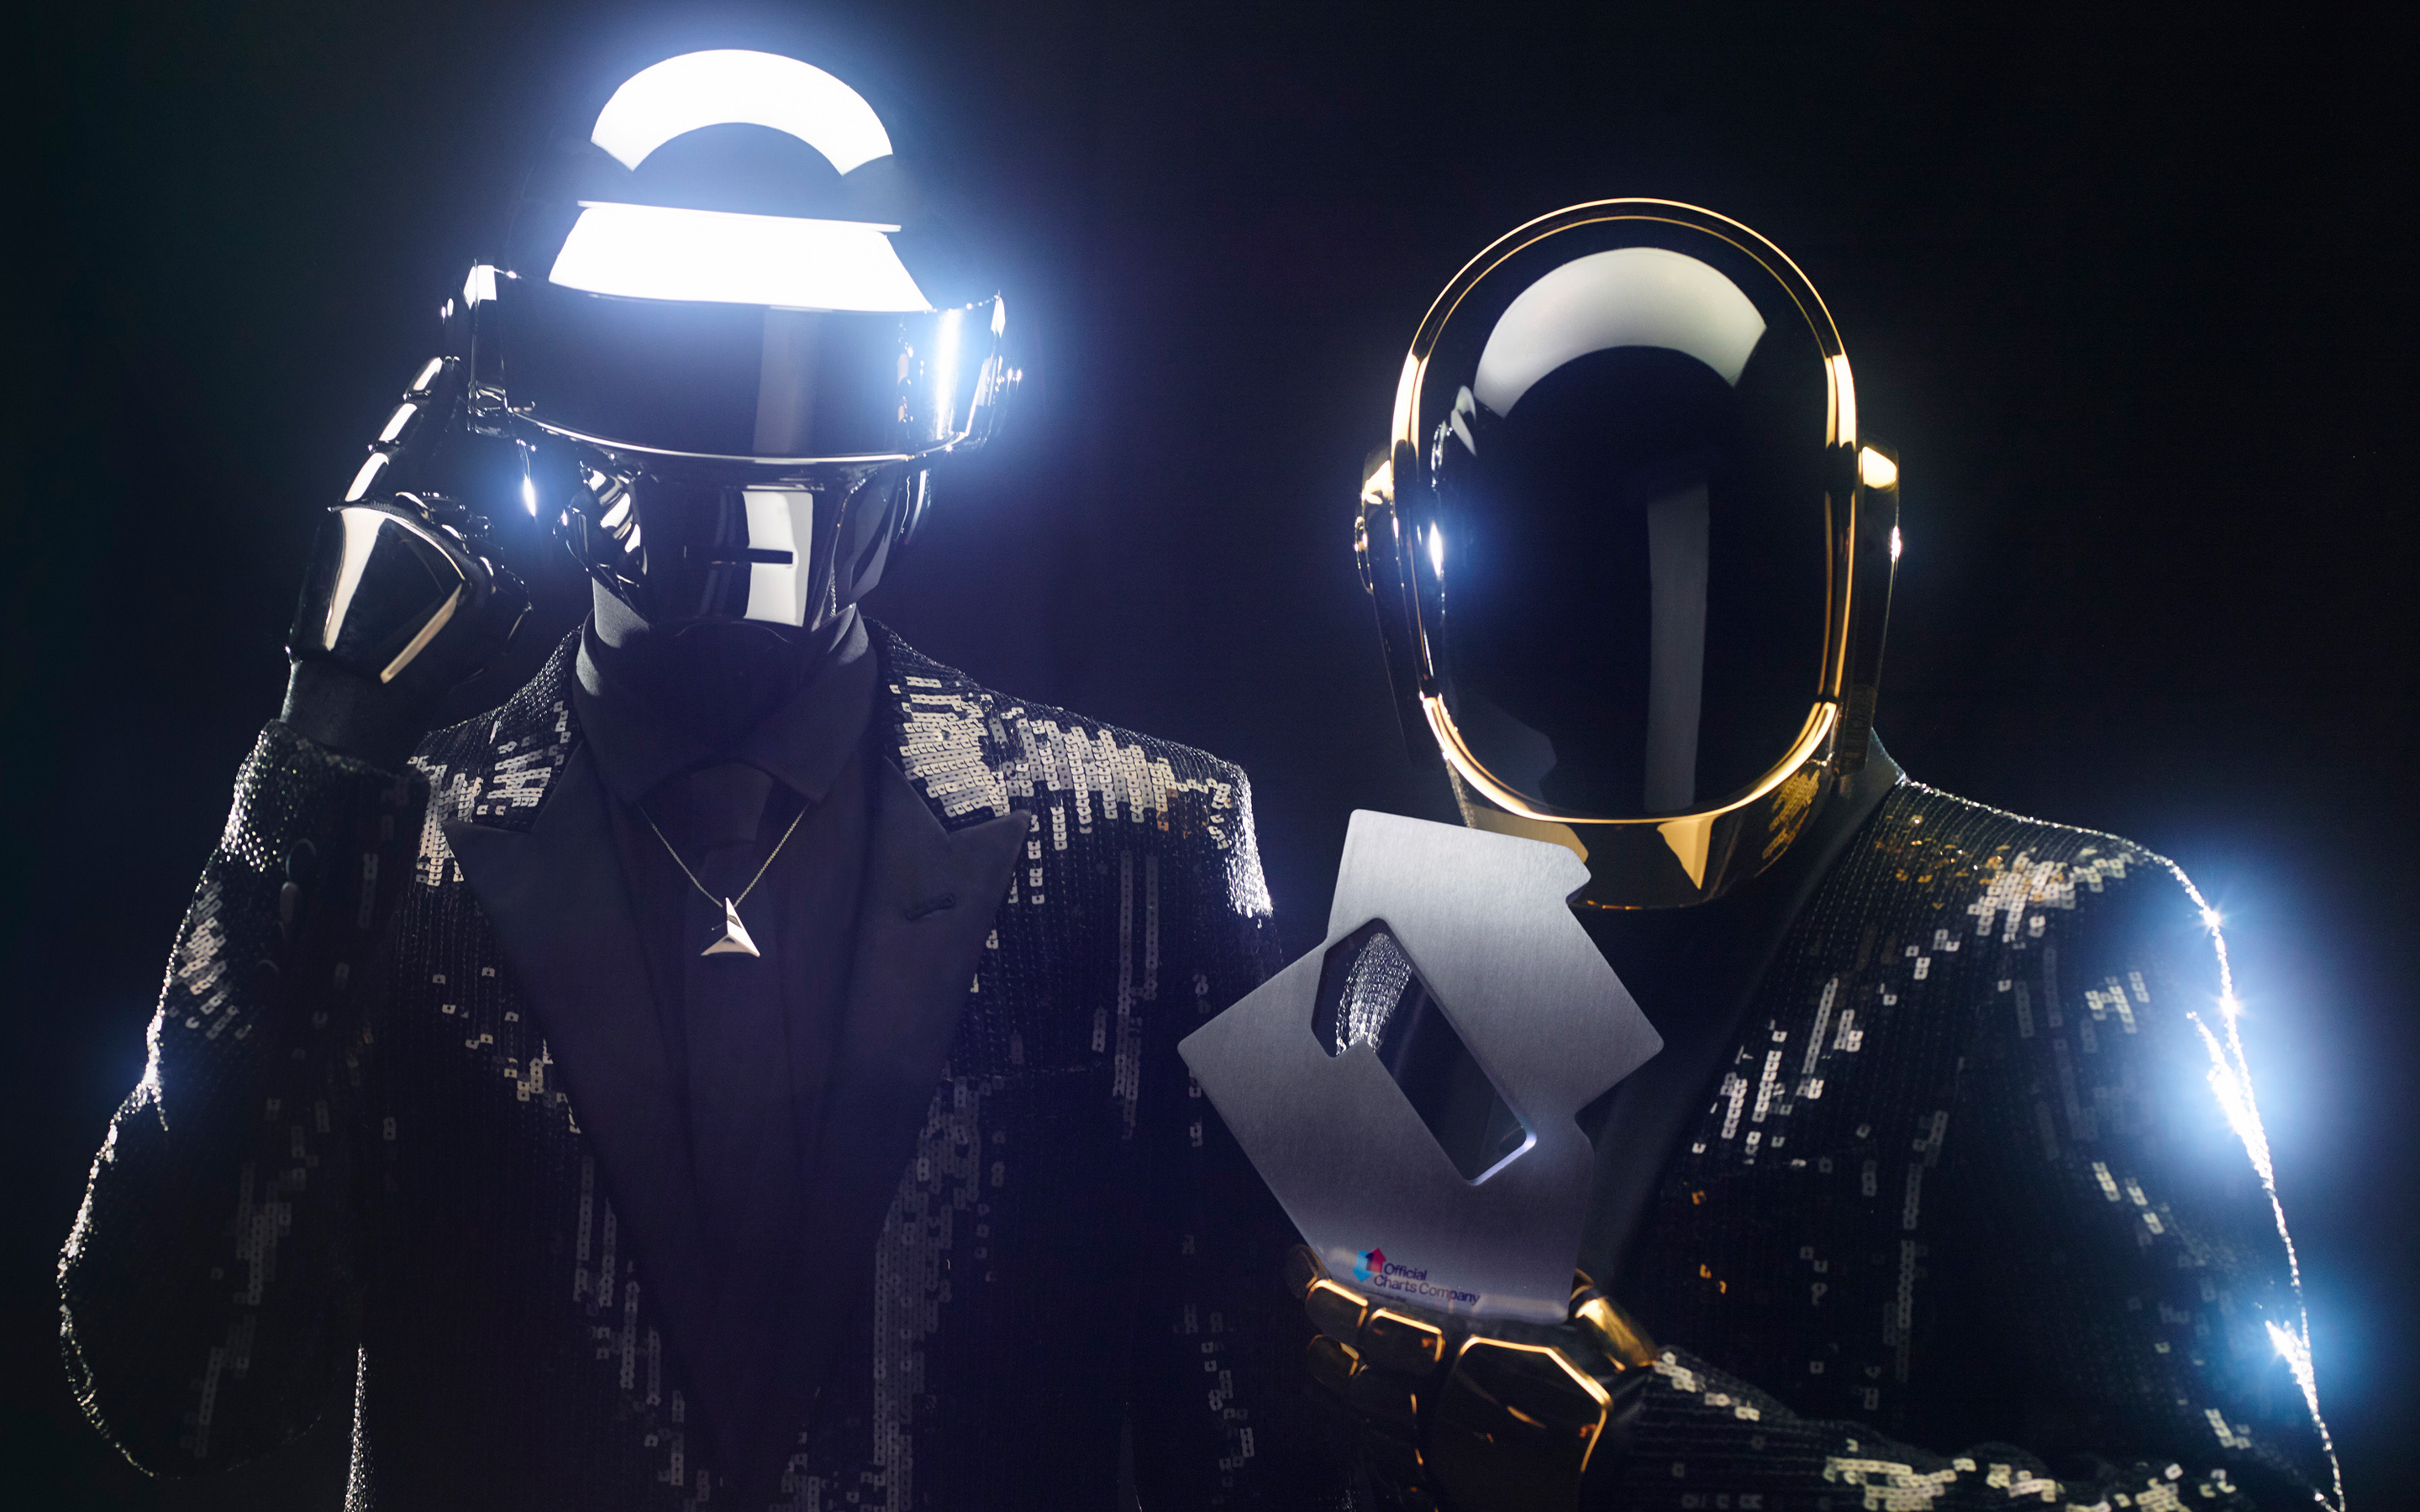 Daft Punk Wallpapers High Quality | Download Free